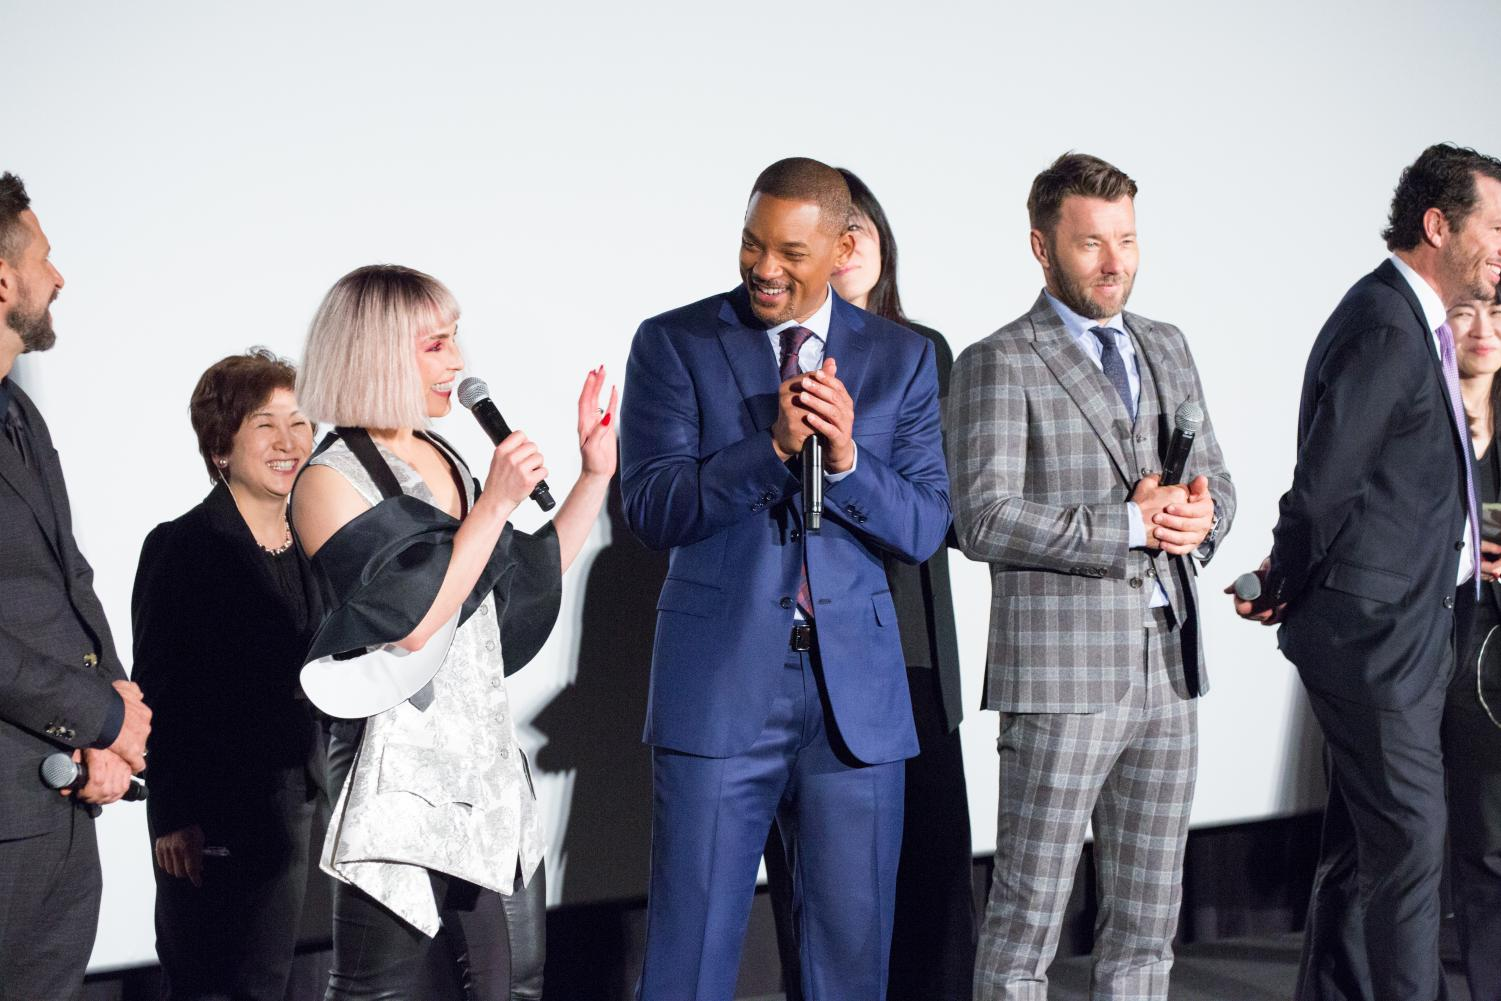 Bright, one of the latest Netflix projects, stars Will Smith and Joel Edgerton.